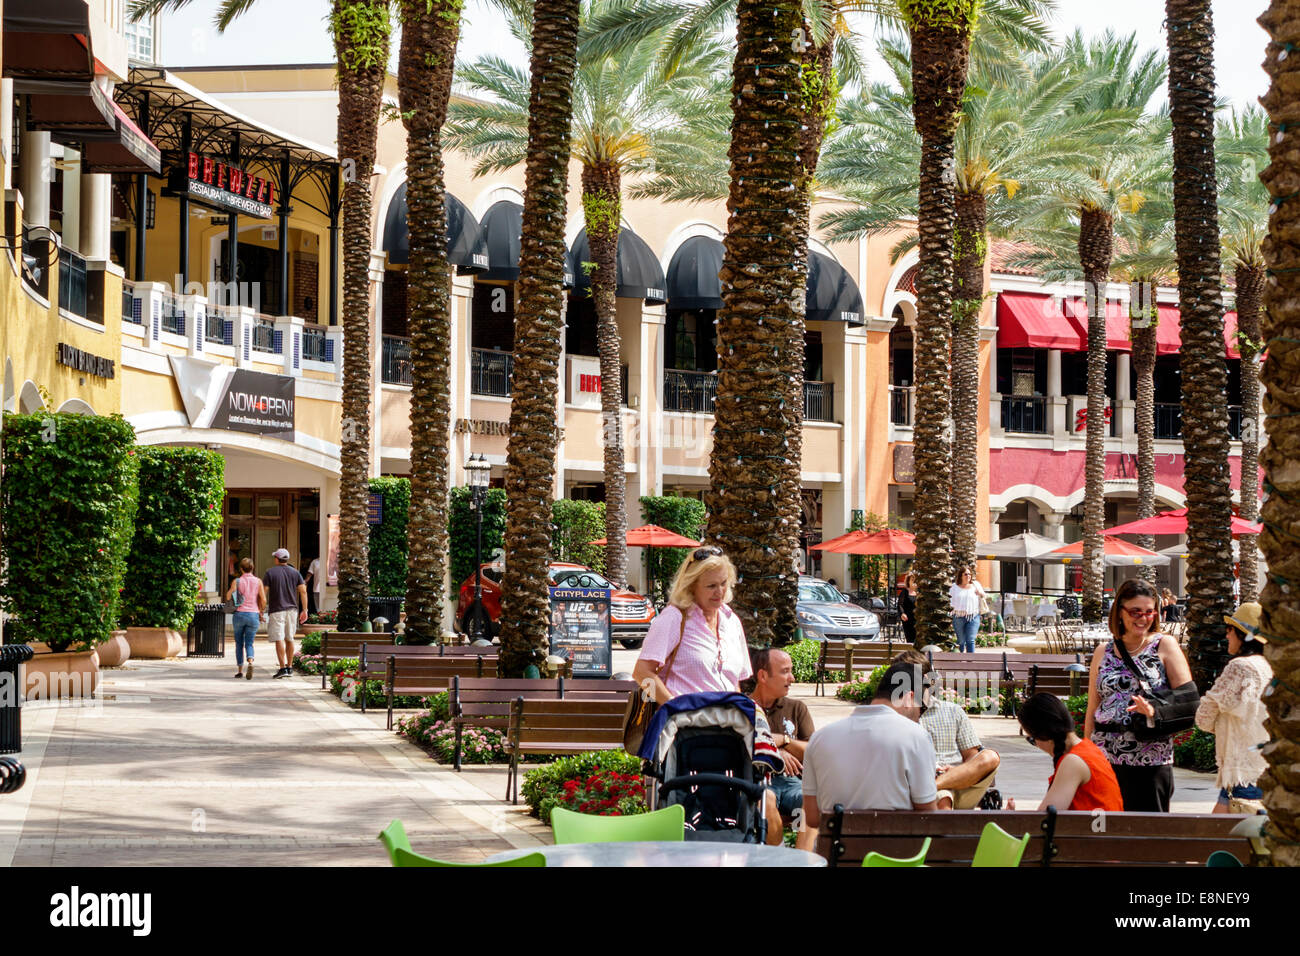 Best West Palm Beach Shopping: See reviews and photos of shops, malls & outlets in West Palm Beach, Florida on TripAdvisor. West Palm Beach. West Palm Beach Tourism #8 of 32 Shopping in West Palm Beach Shopping Malls. Learn More The Gallery at Center for Creative Education.